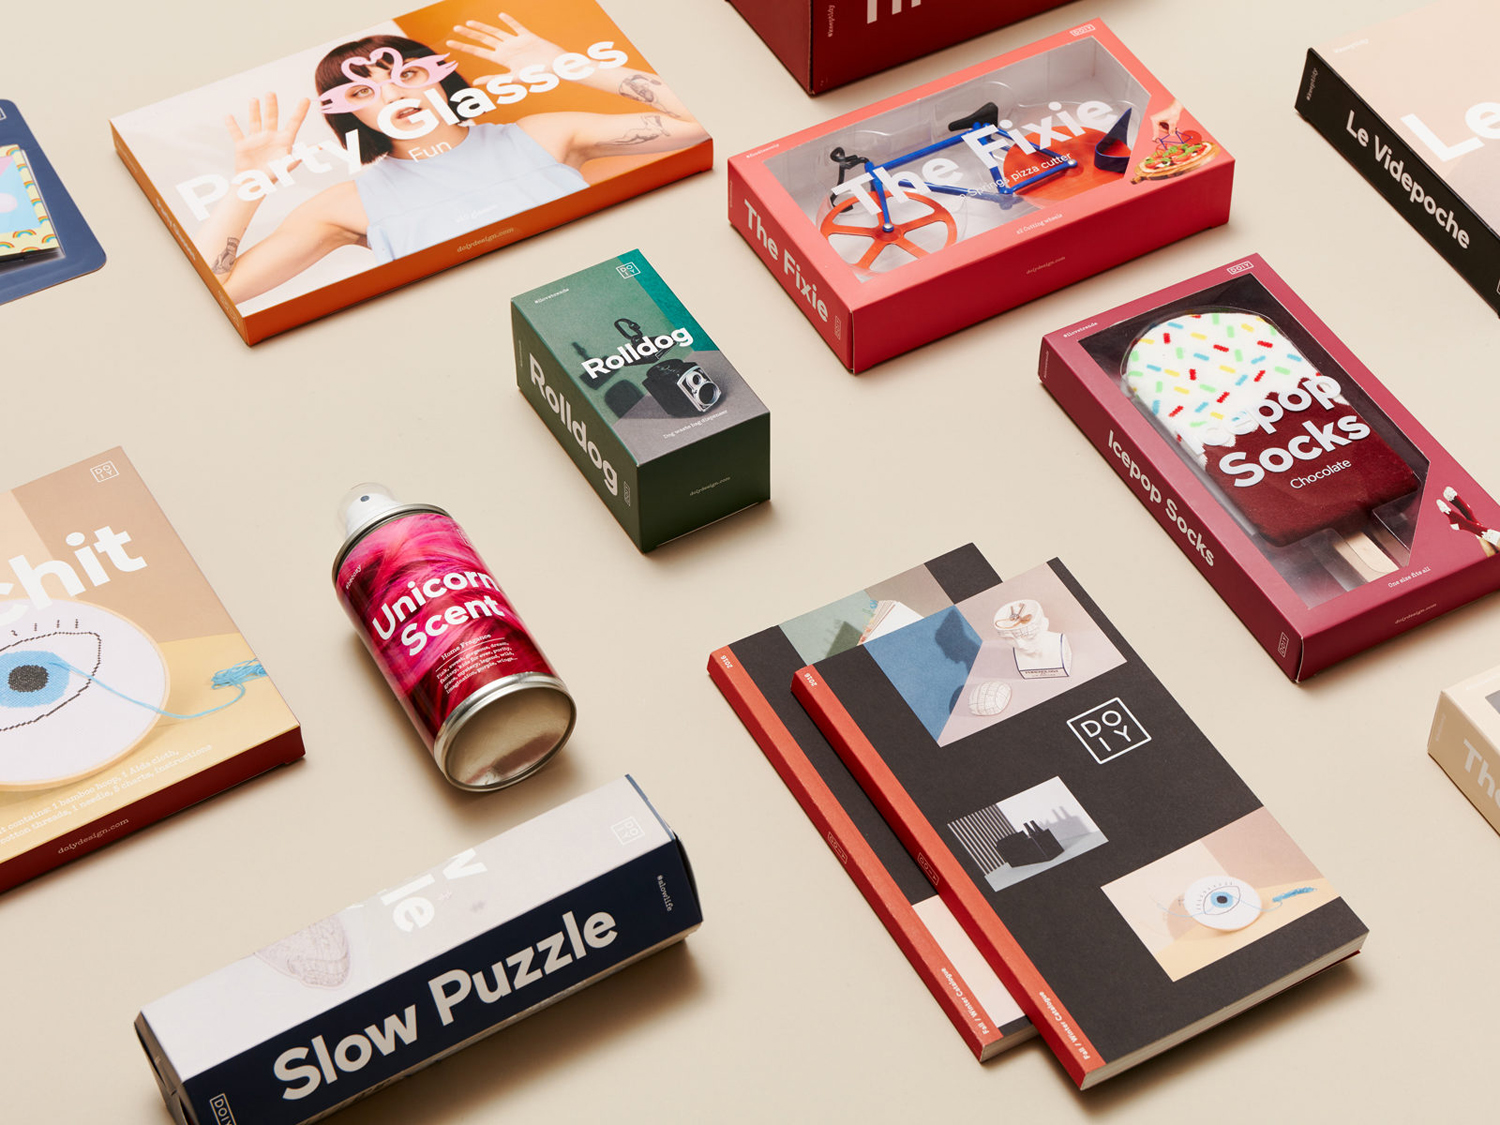 Logo, art direction, print and packaging by Barcelona-based Folch for product design company DOIY